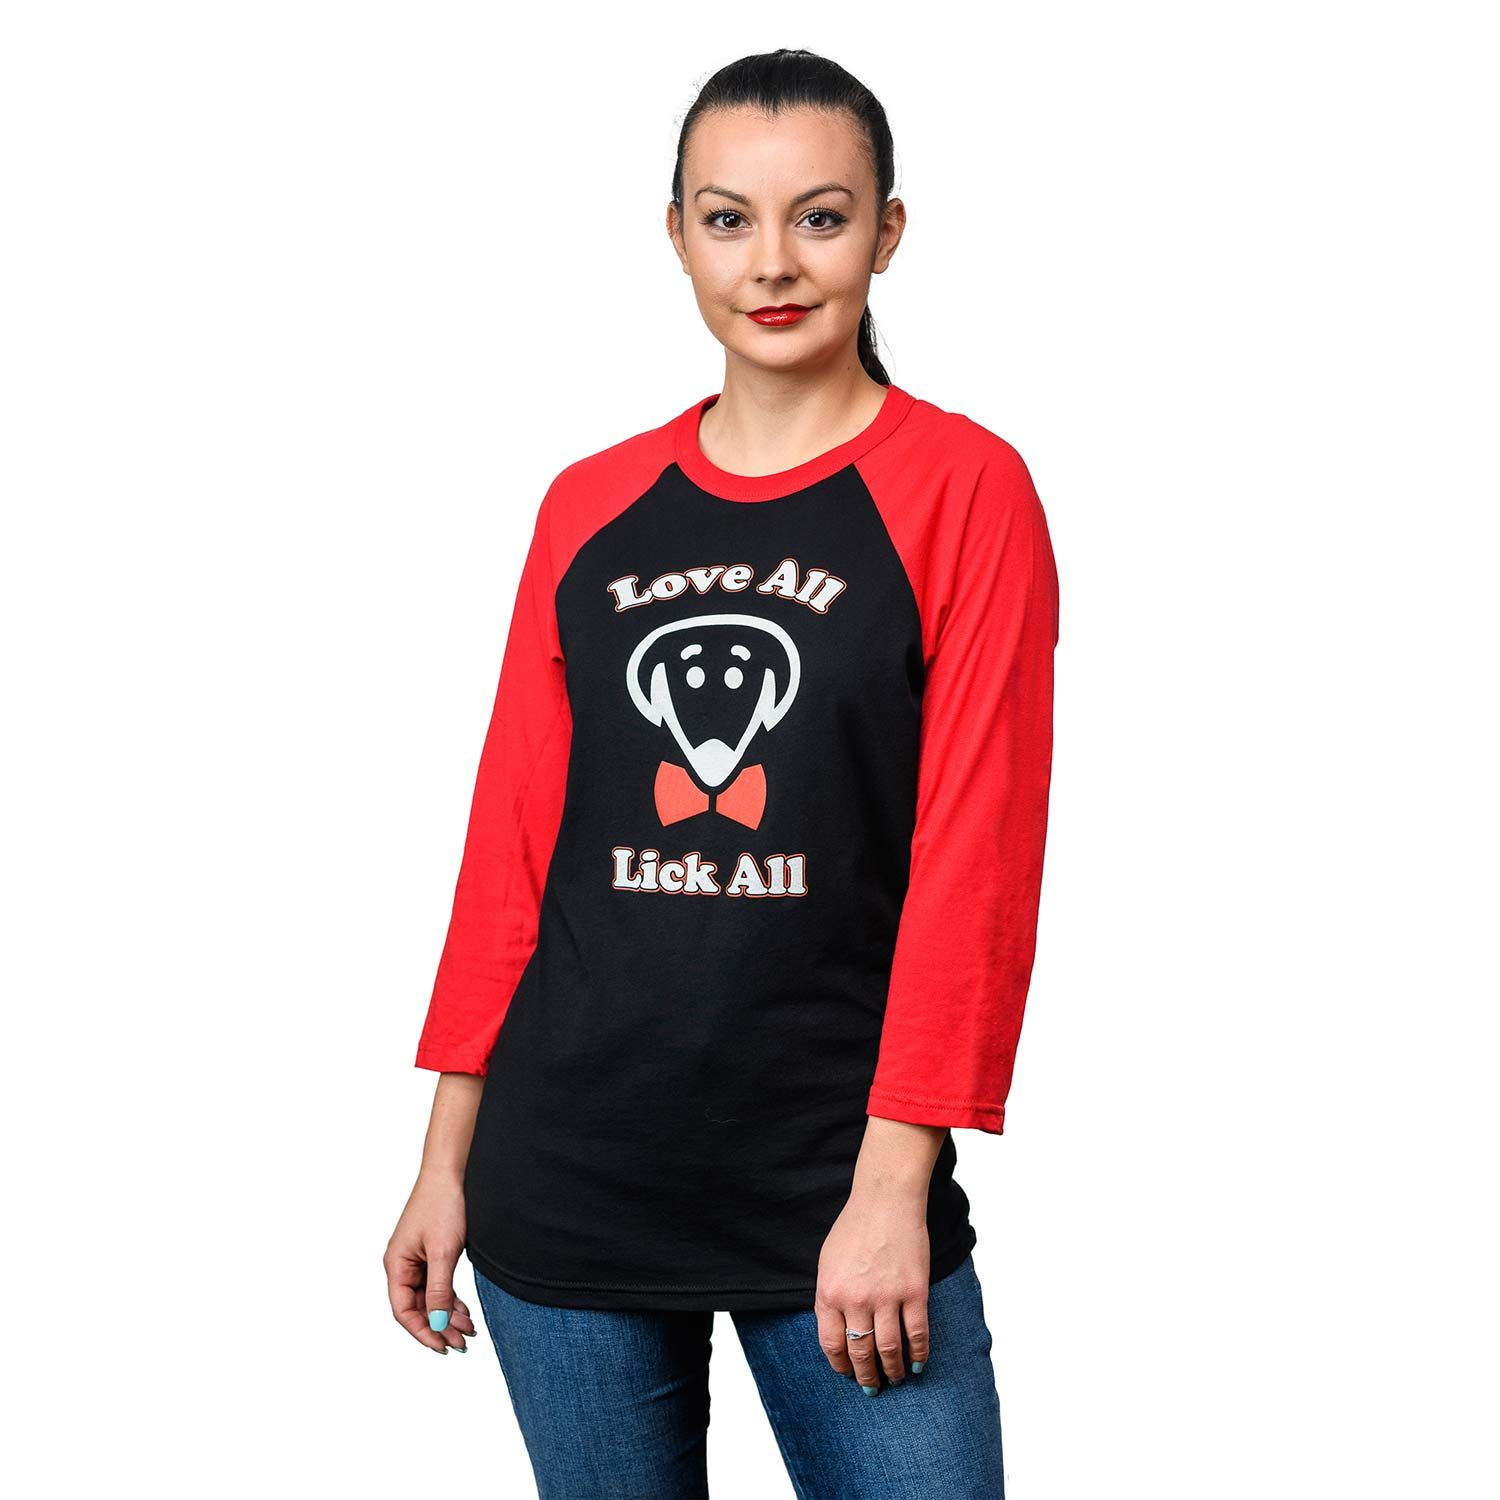 Love All Lick All shirt in black